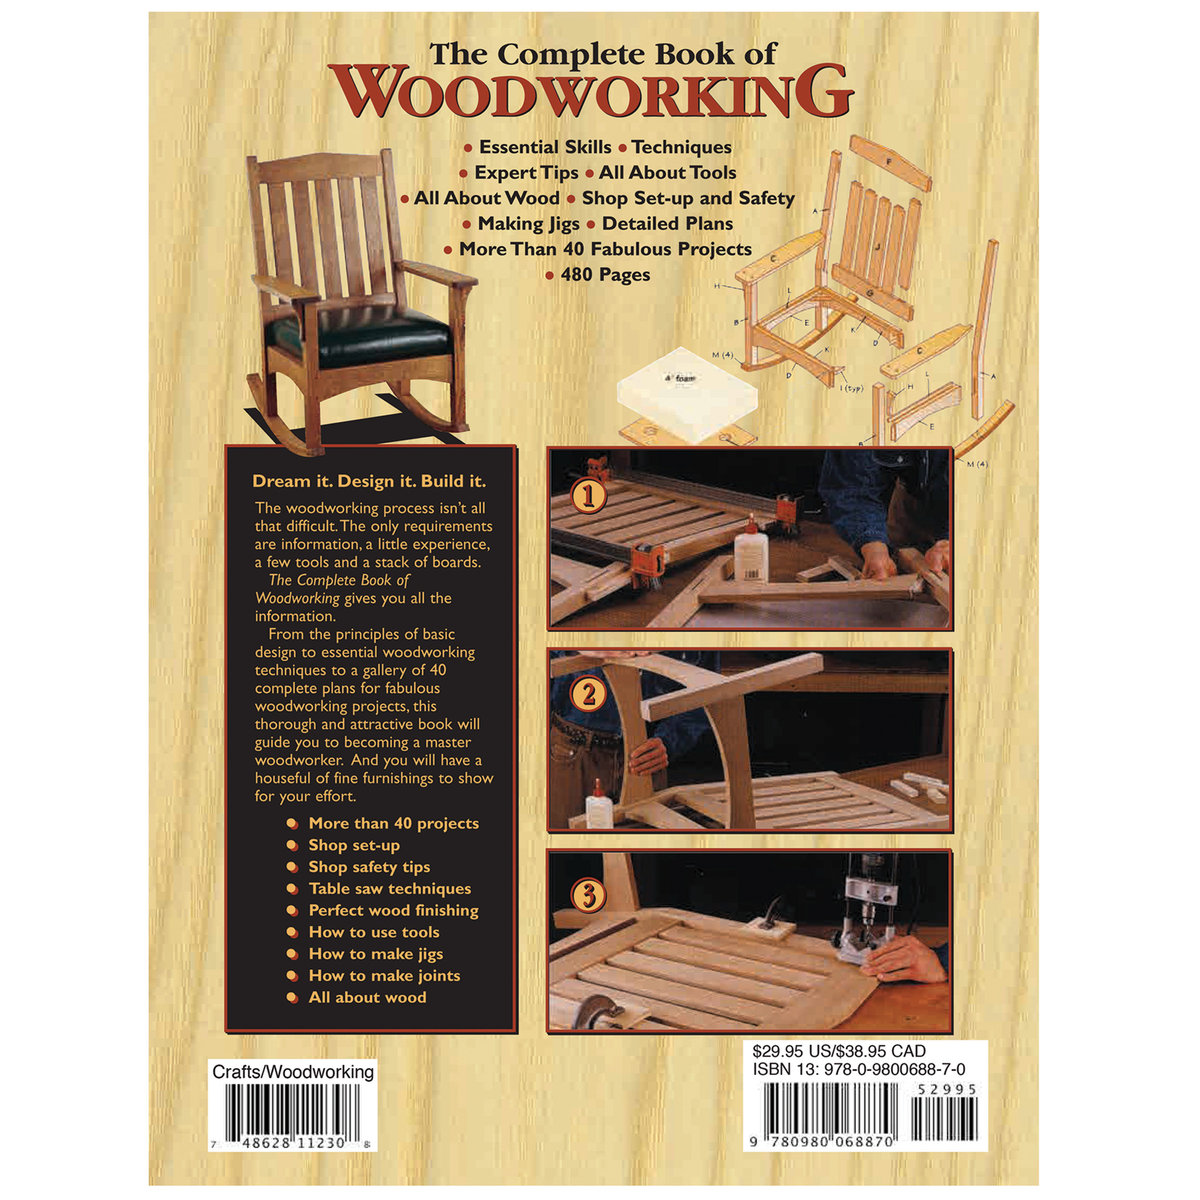 fox chapel - complete book of woodworking